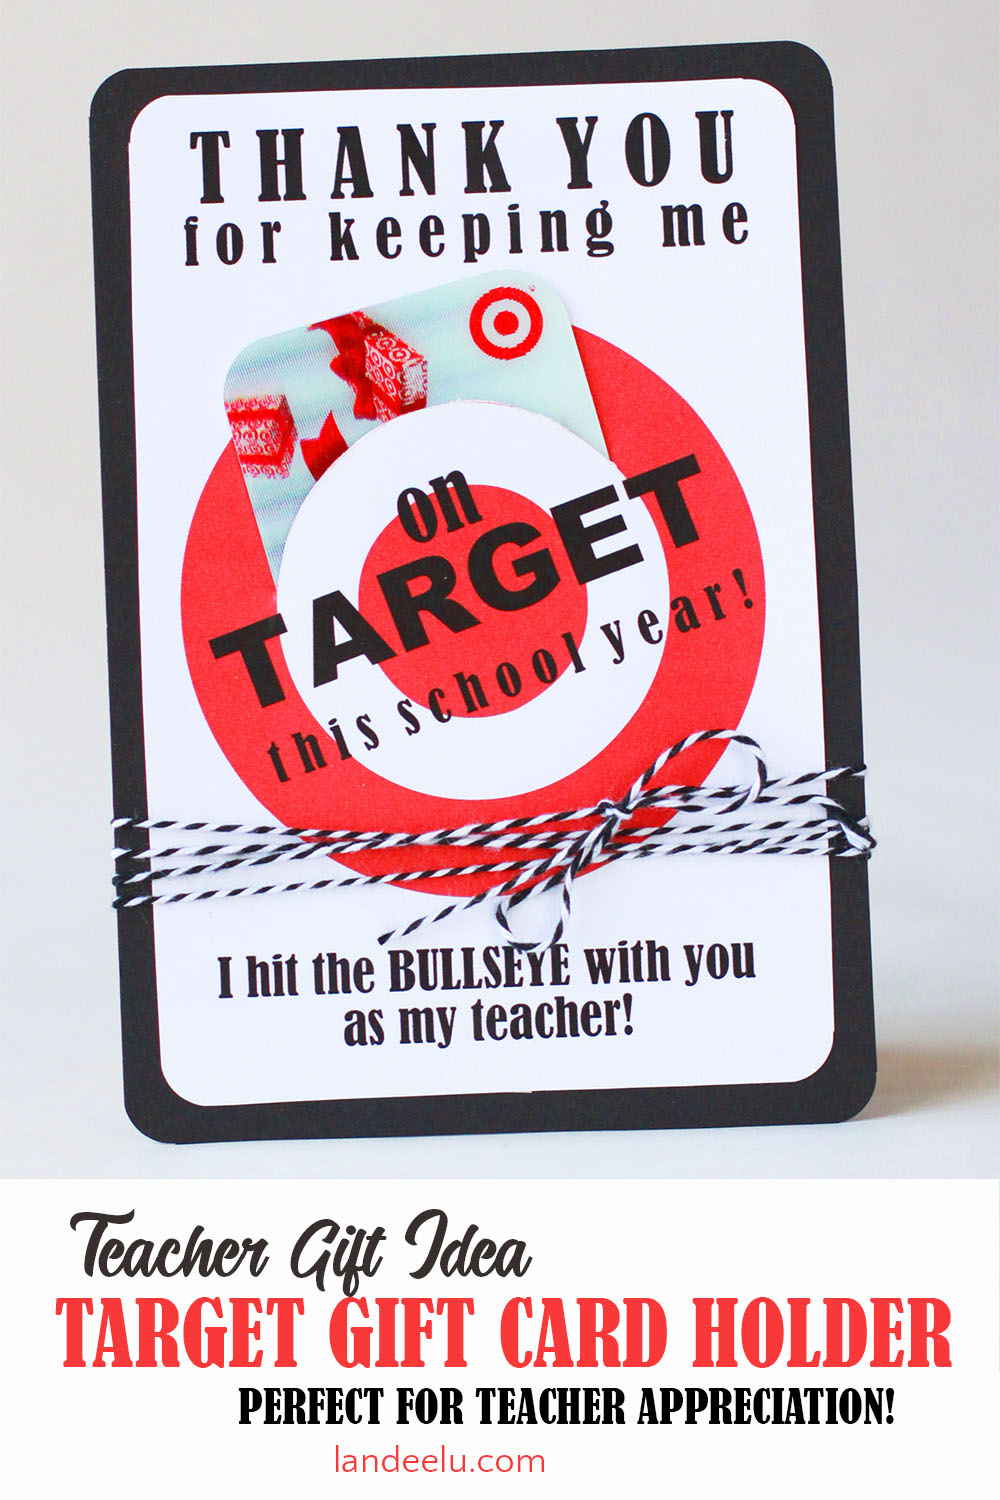 picture about Redbox Teacher Appreciation Printable referred to as Trainer Appreciation Present Principle: Focus Reward Card Holder